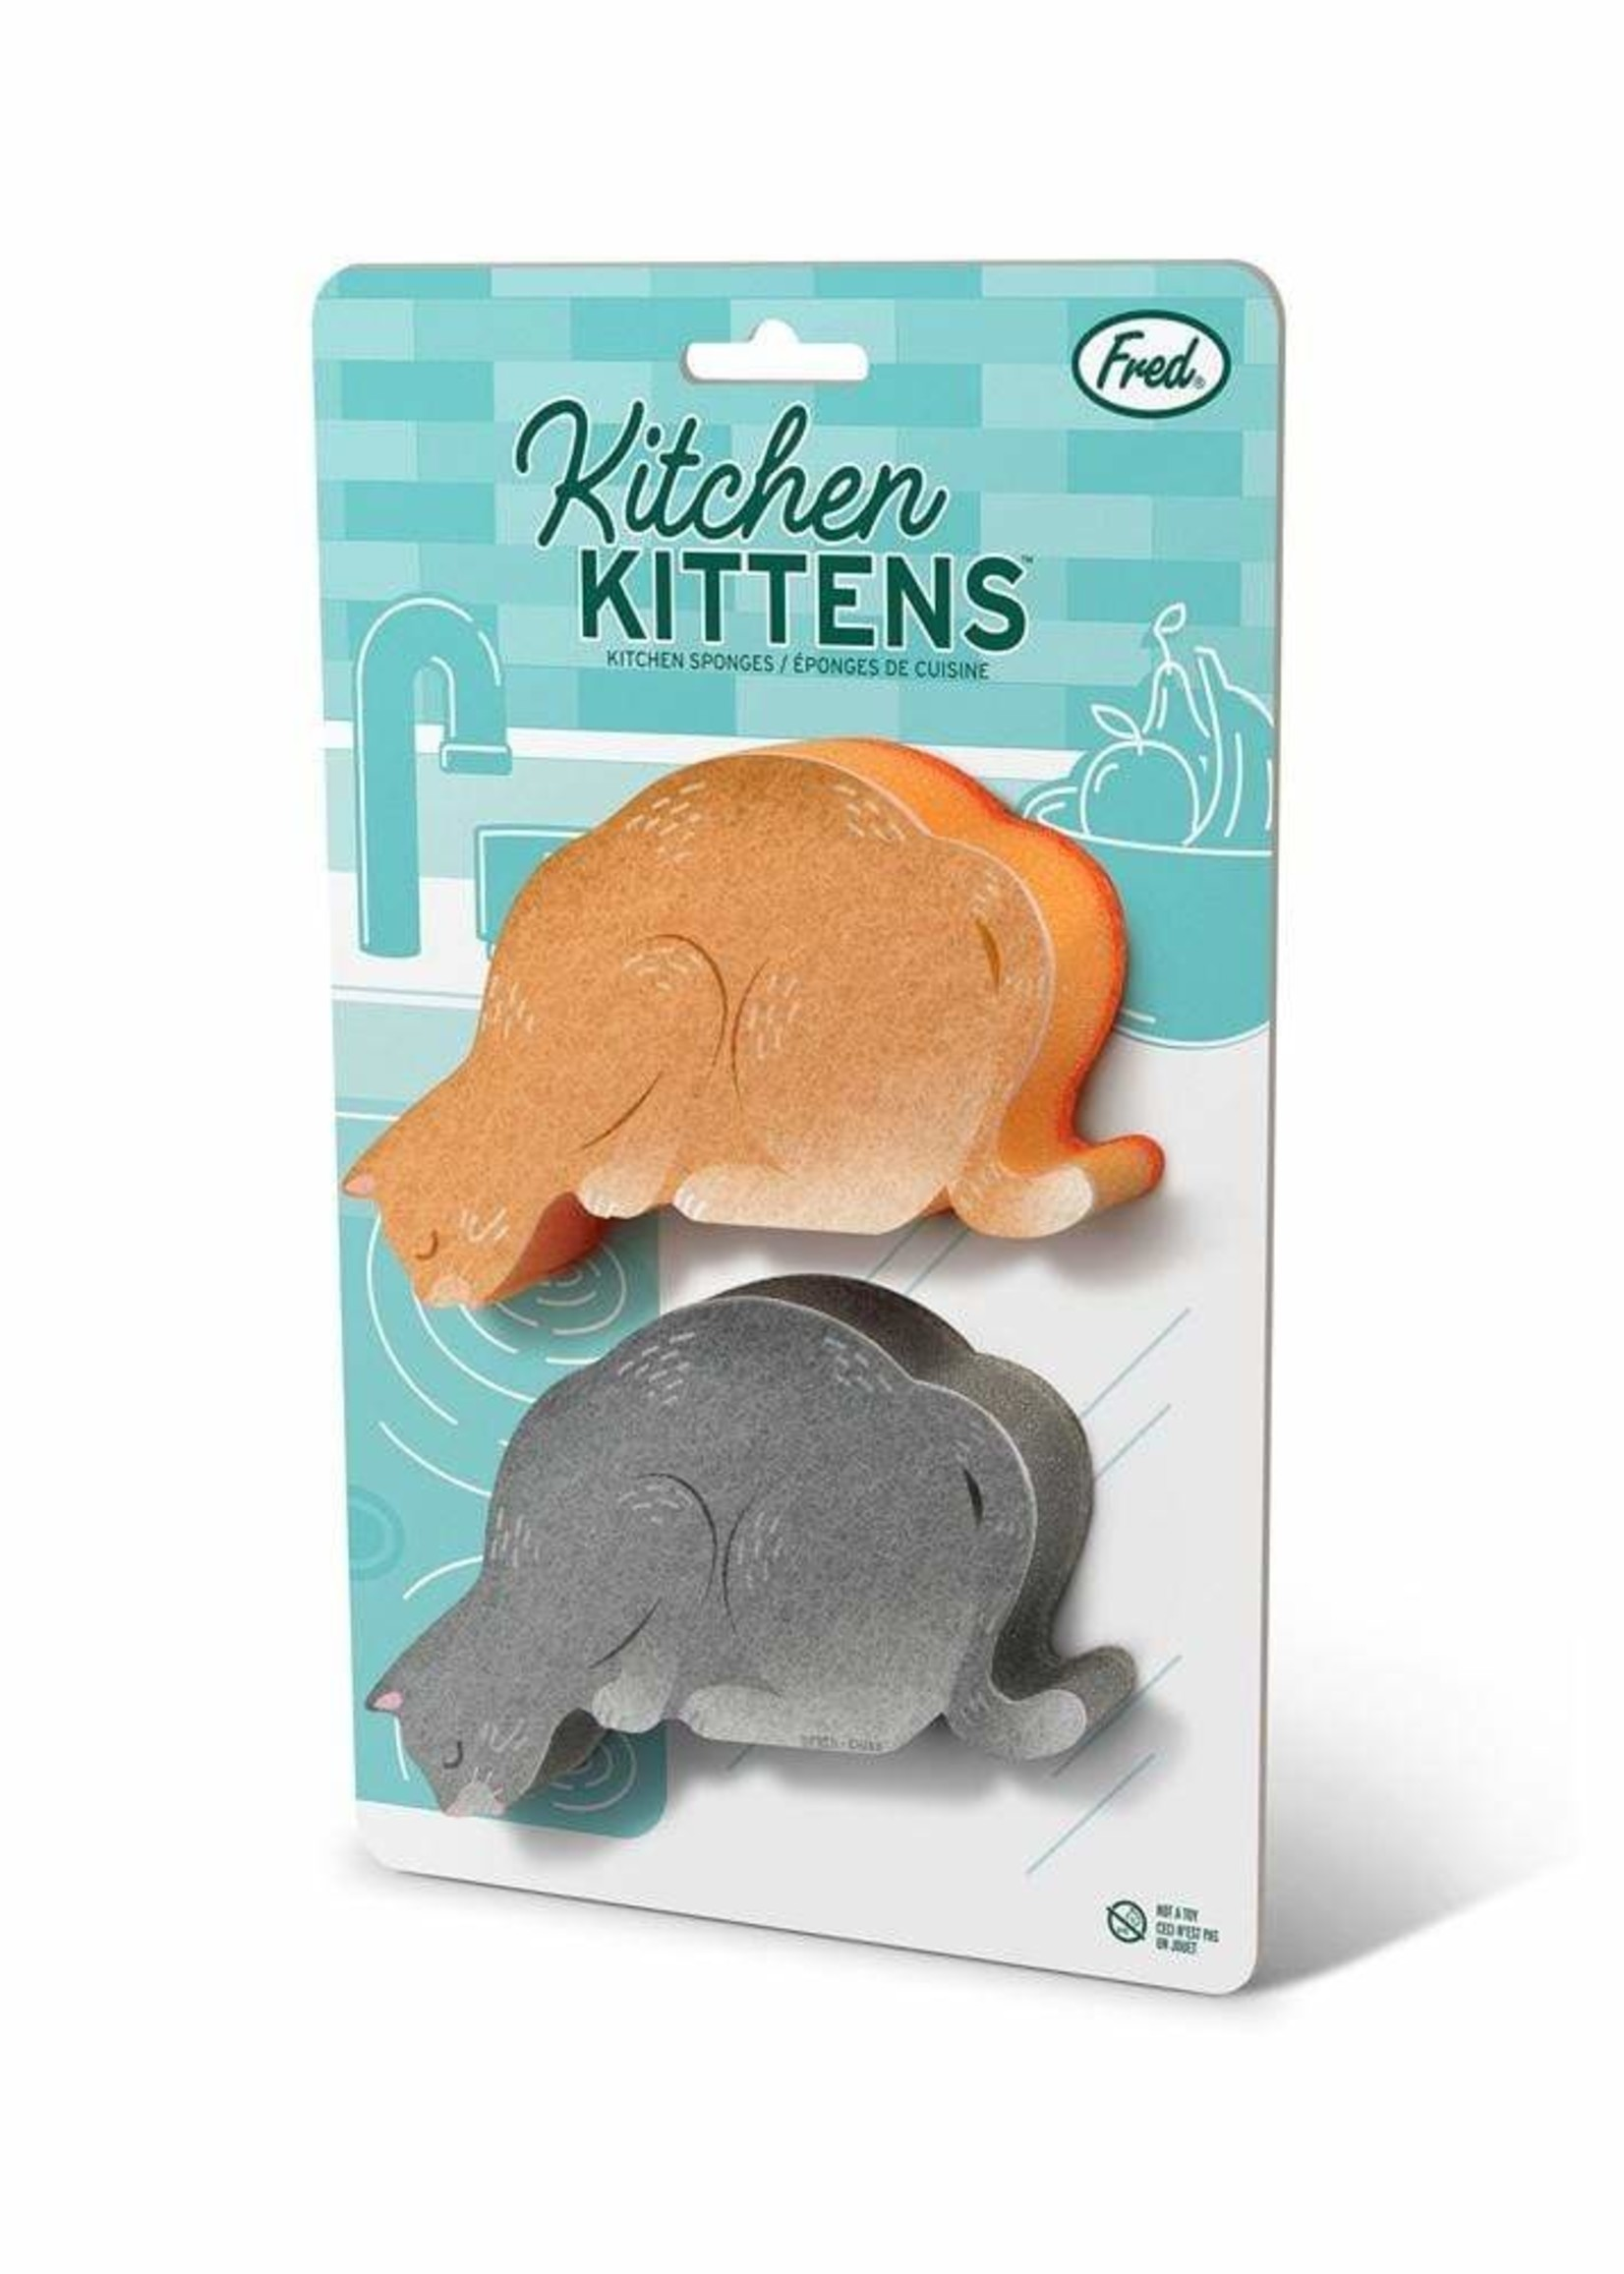 Fred & Friends FRED KITCHEN KITTENS SPONGES